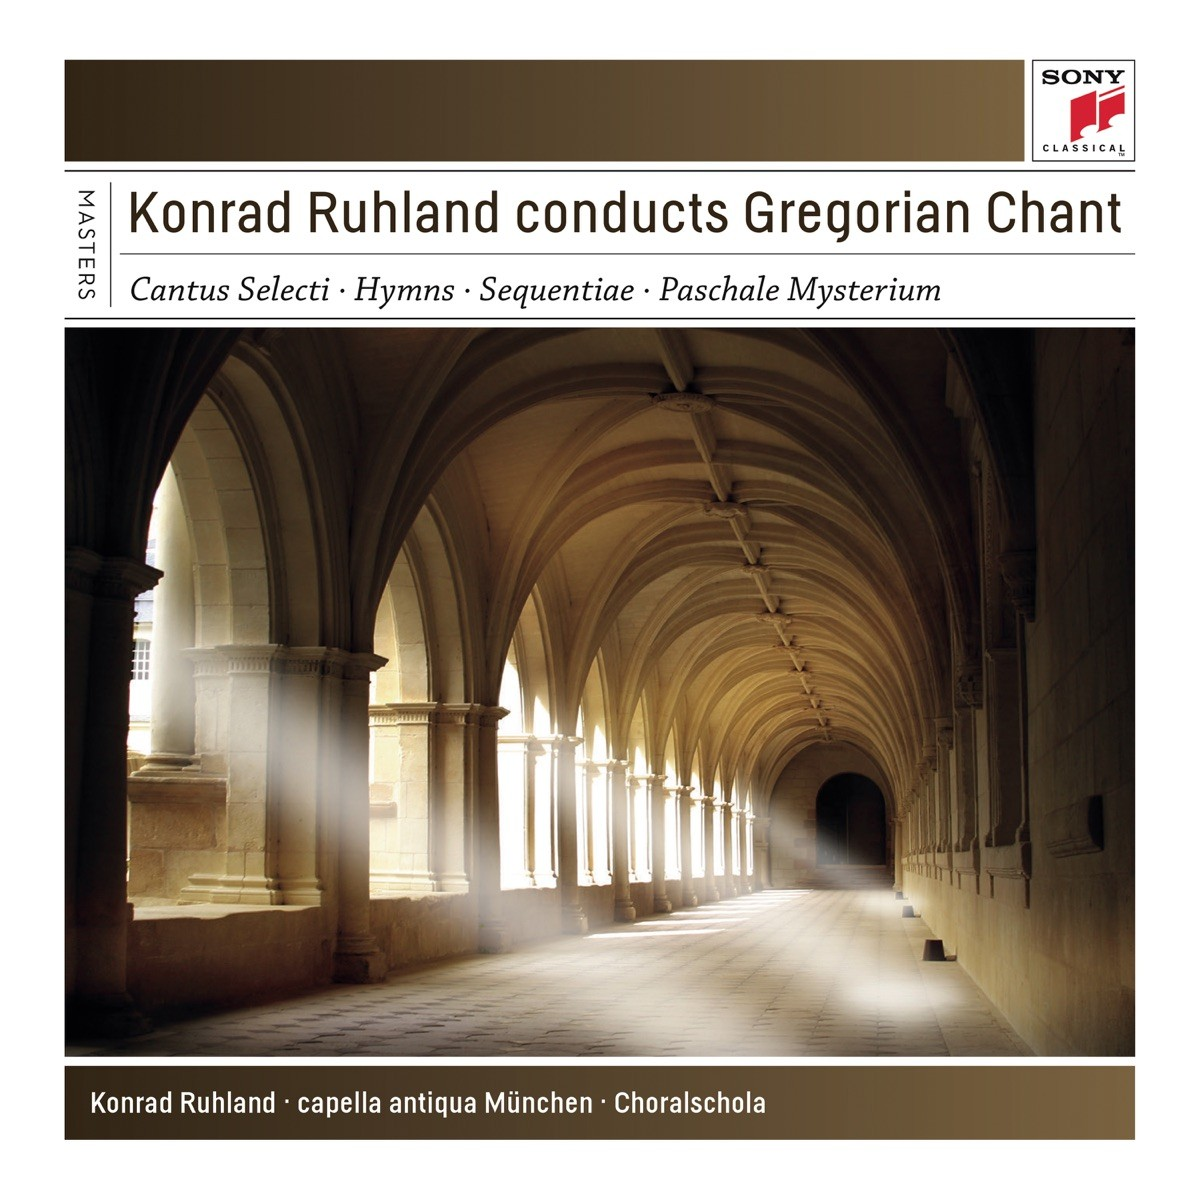 Konrad Ruhland - Conducts Gregorian Chant CD - 88875178042